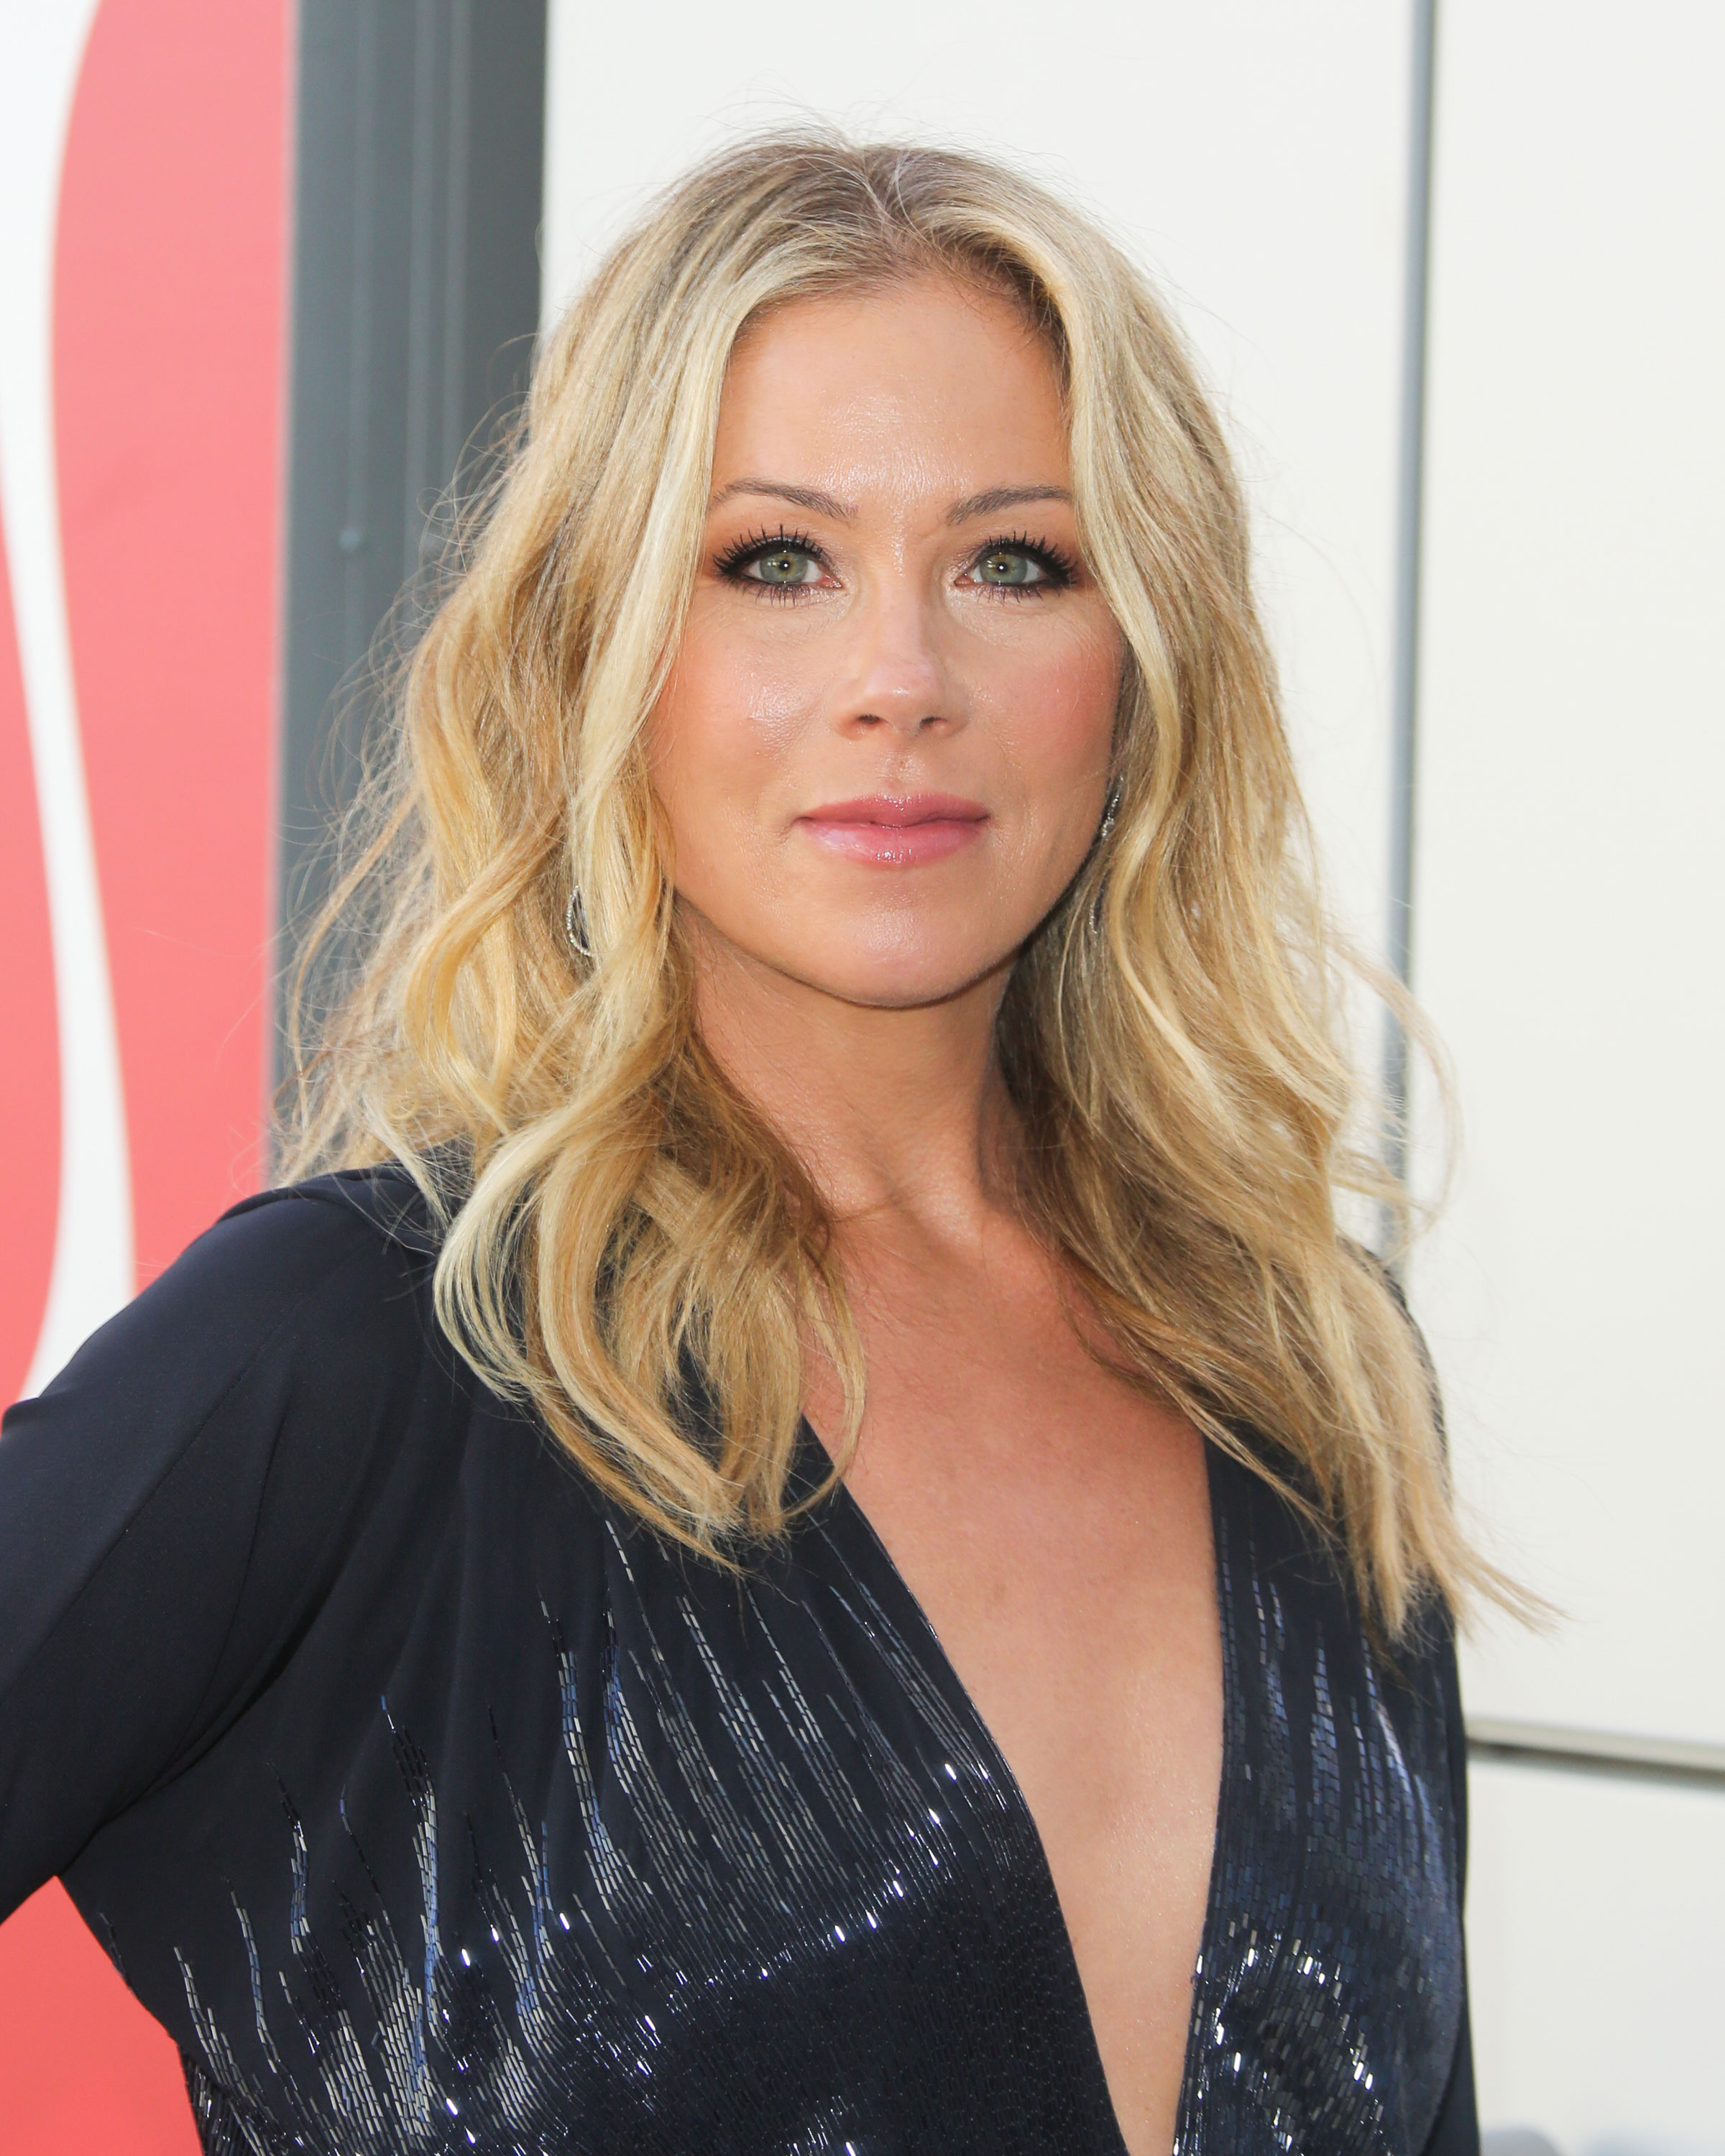 Christina Applegate reveals she had her ovaries and fallopian tubes removed